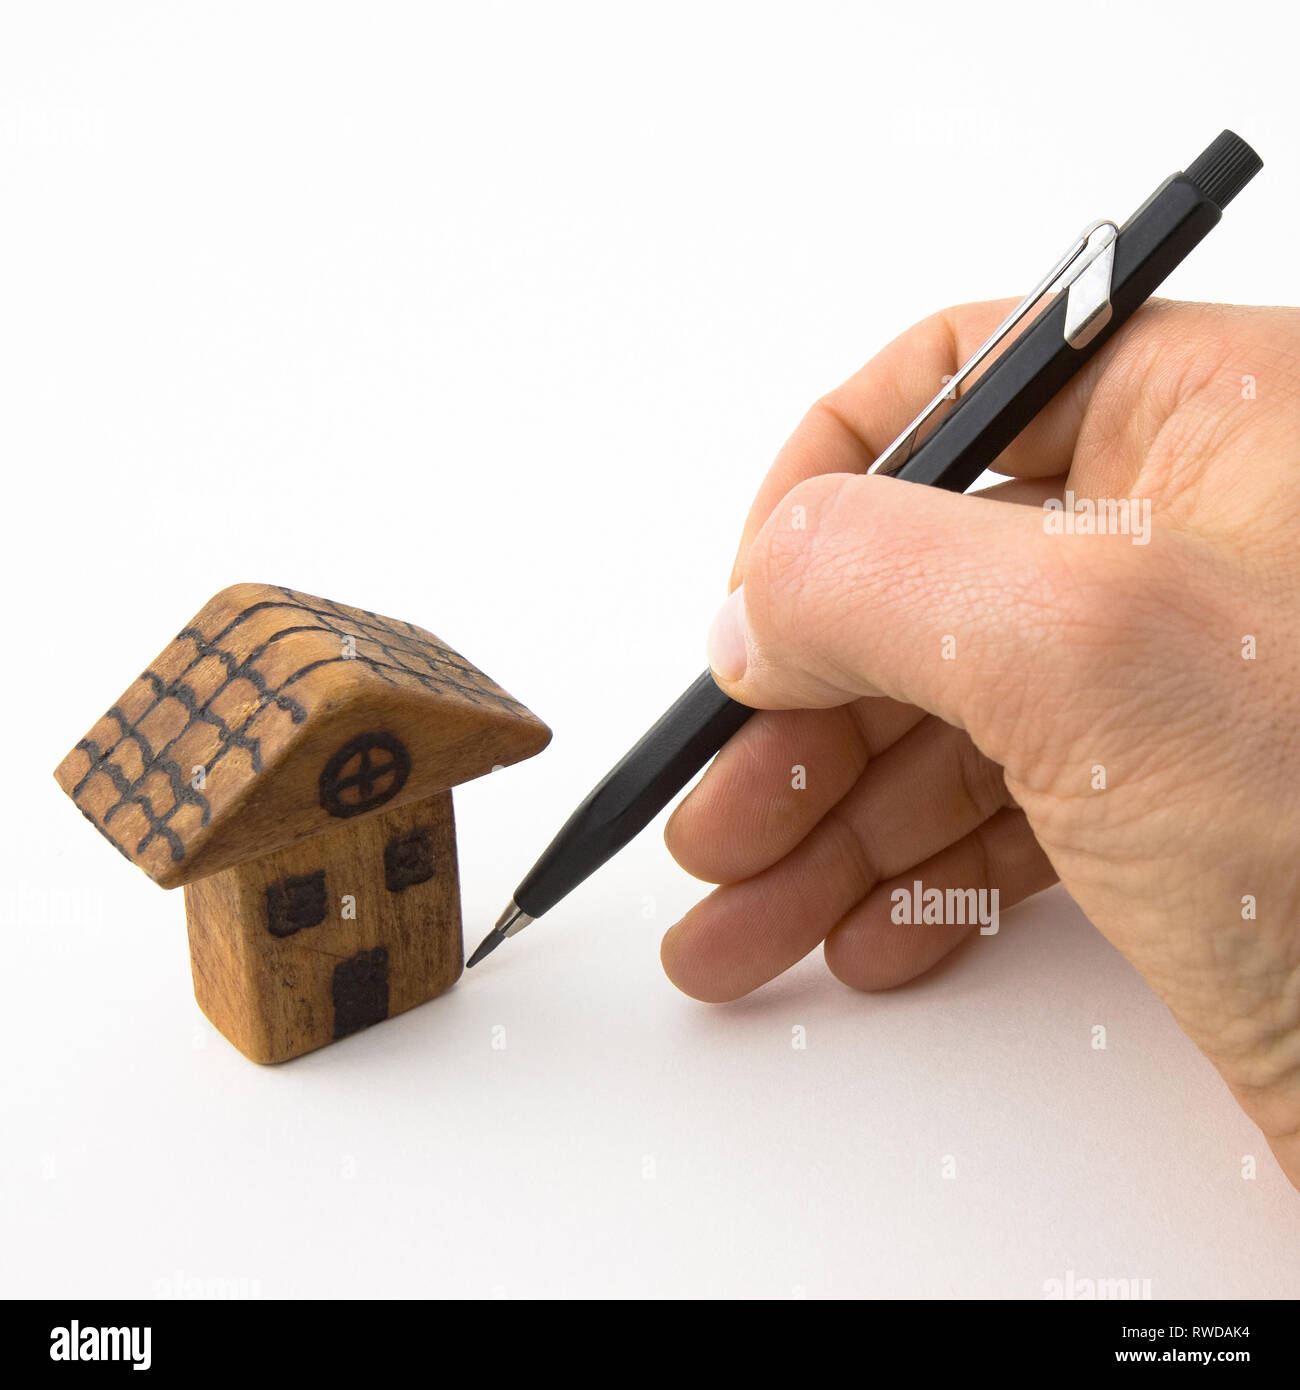 Design your future, invent your own home - concept image - Stock Image